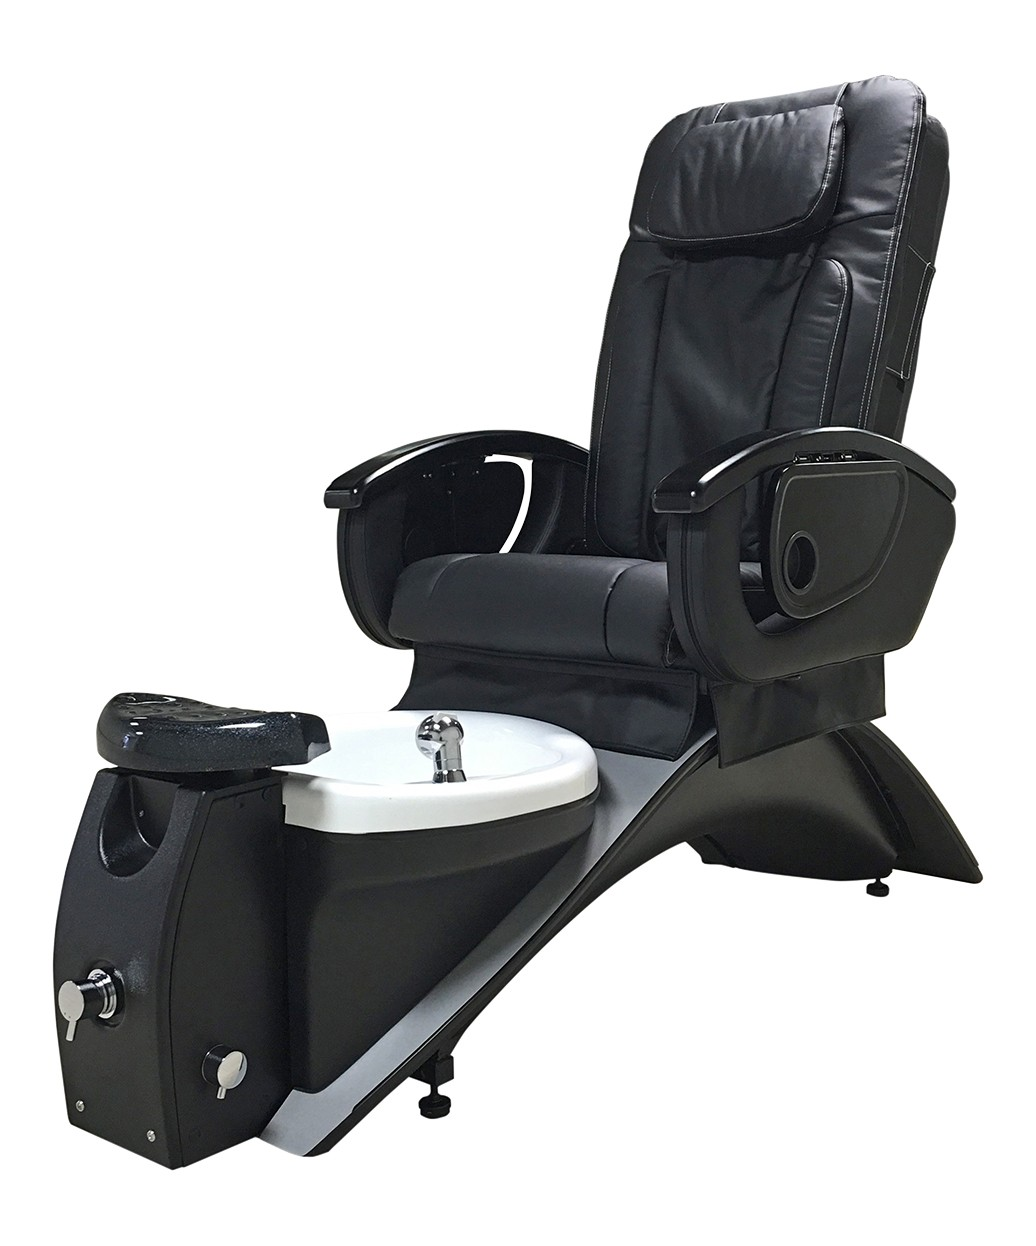 Continuum Vantage VE Pedicure Spa